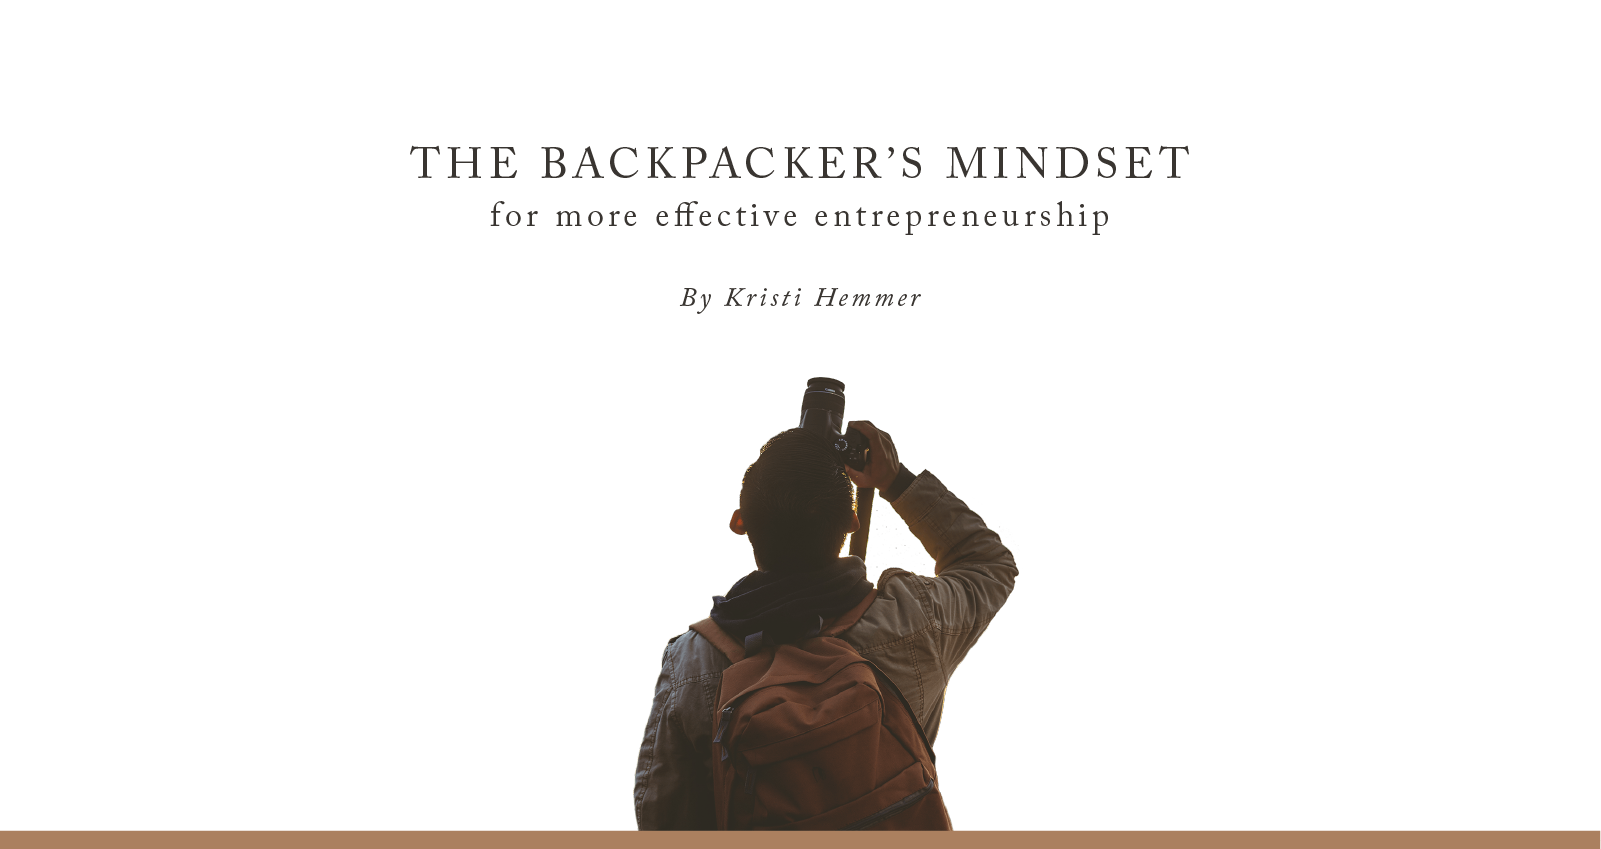 The Backpacker's Mindset for More Effective Entrepreneurship - Learn How to Become a Social Good Entrepreneur